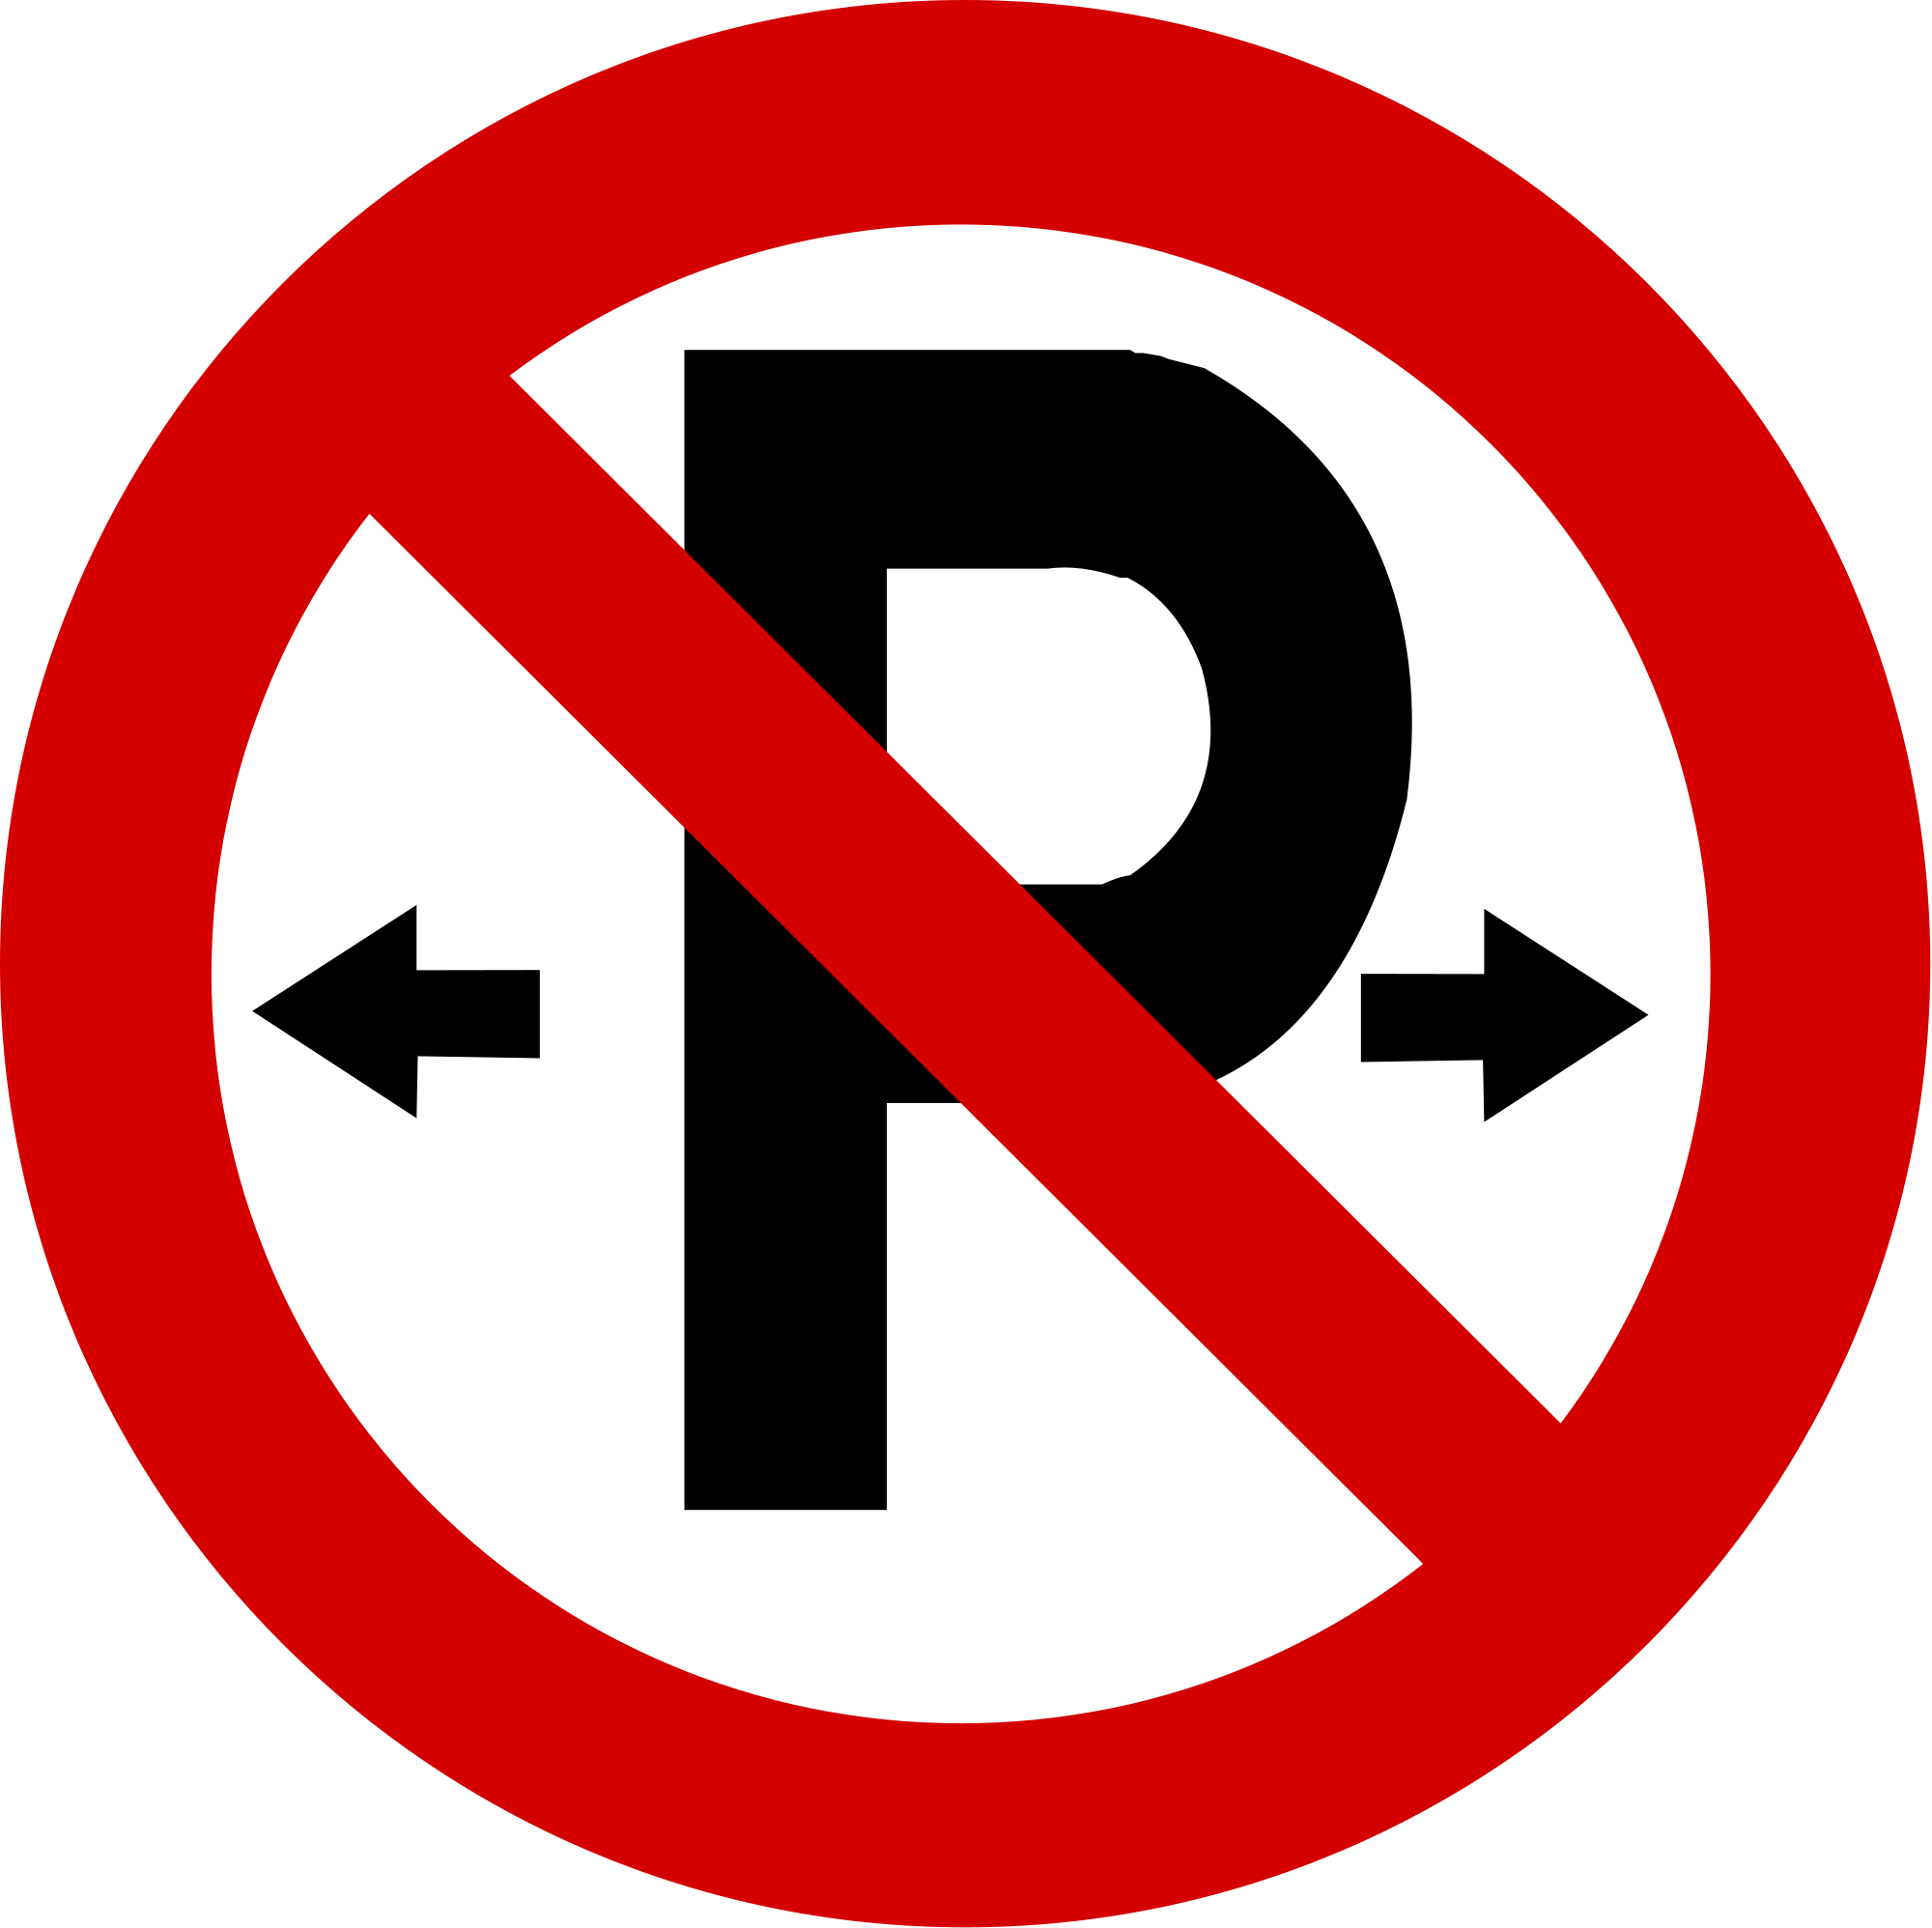 File:Regulatory road sign no parking.svg - Wikimedia Commons